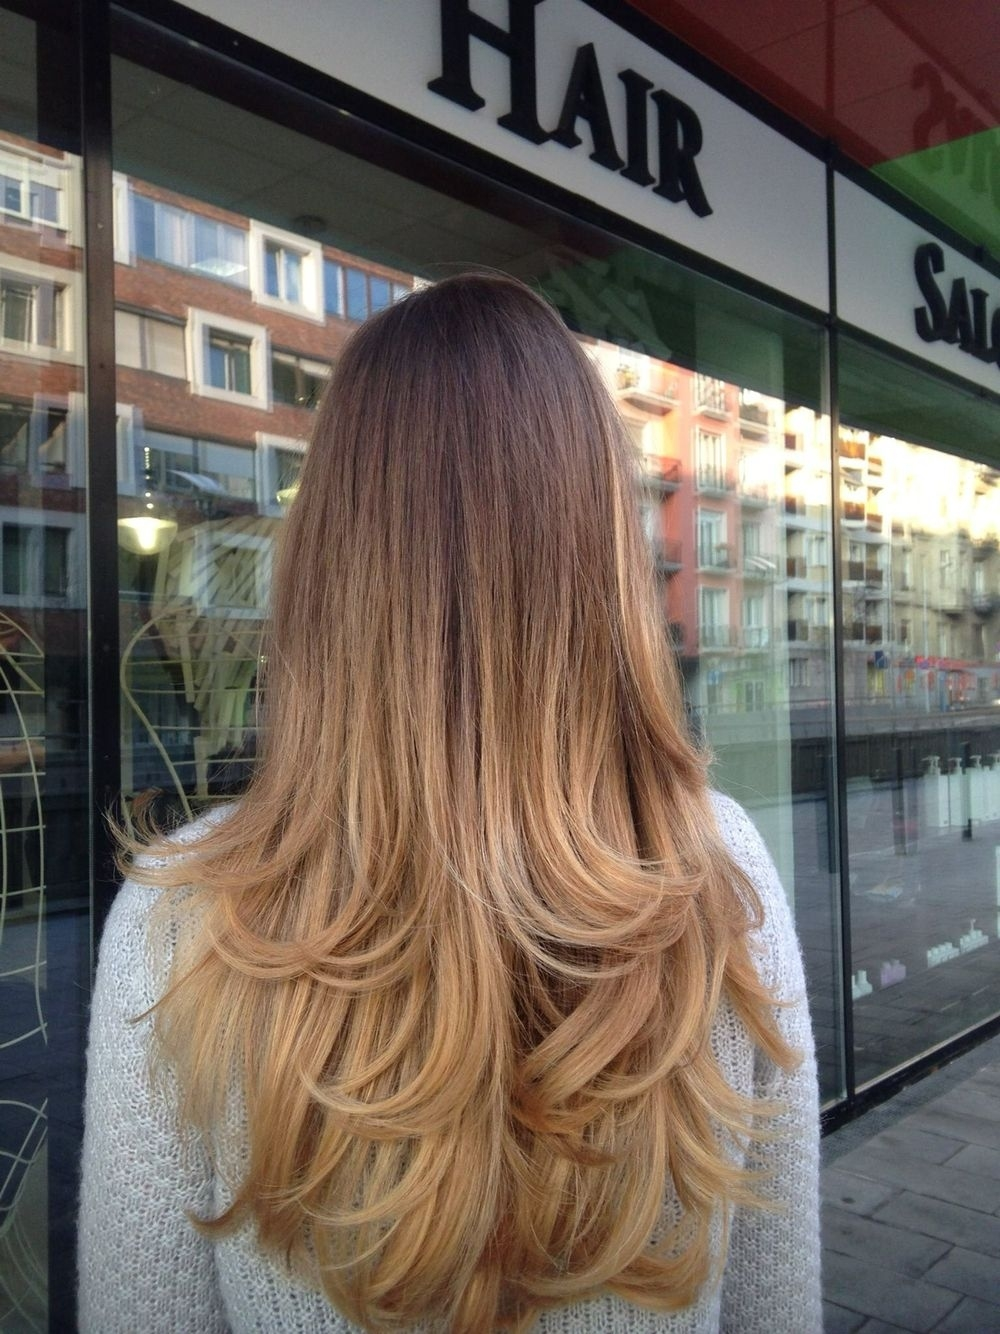 White Hair Salon, Budapest | Hairstyle | Pinterest | White Hair And throughout Haircut Salon And More Budapest